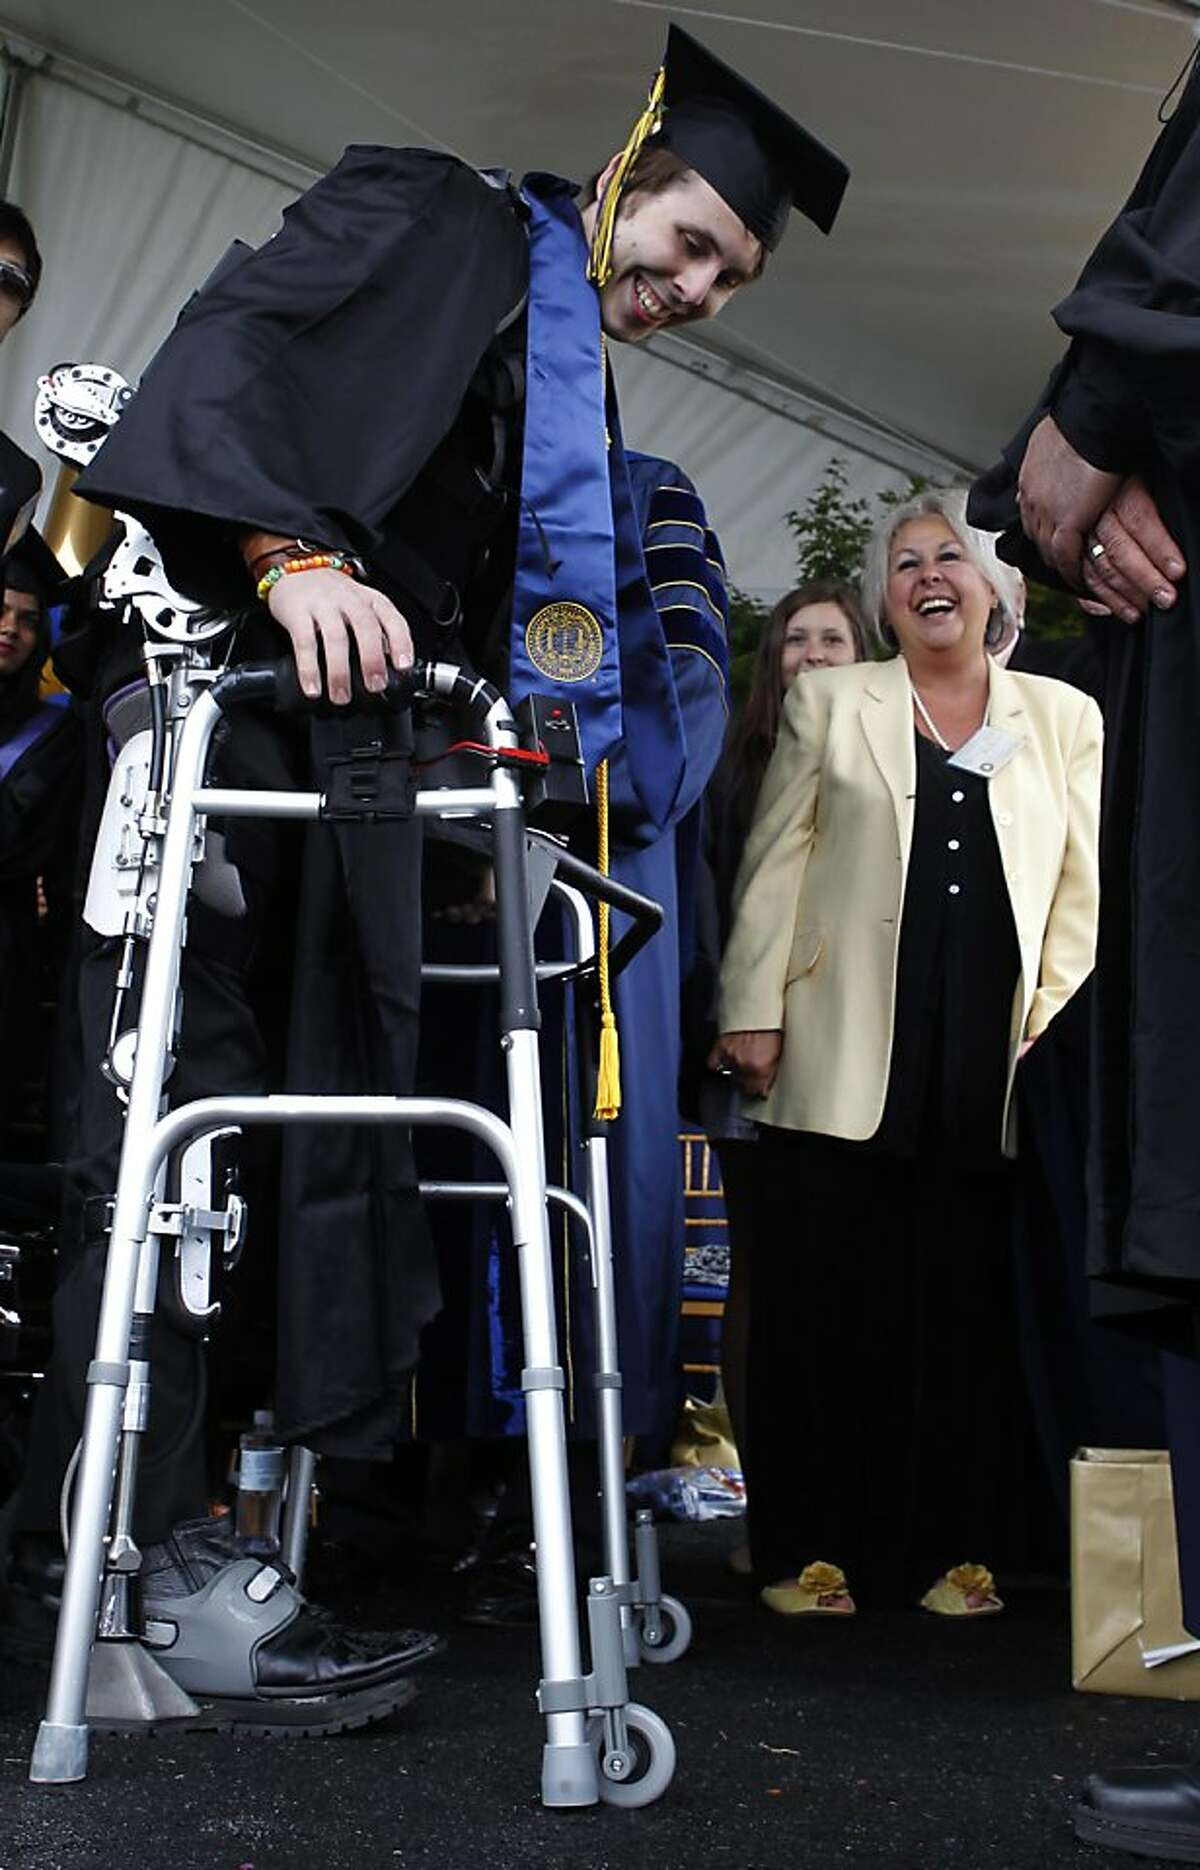 Lillian Whitney (right) watches her son Austin Whitney, who is paralyzed from the waist down, walk across the stage strapped to exoskeleton legs during commencement ceremonies at UC Berkeley on Saturday.